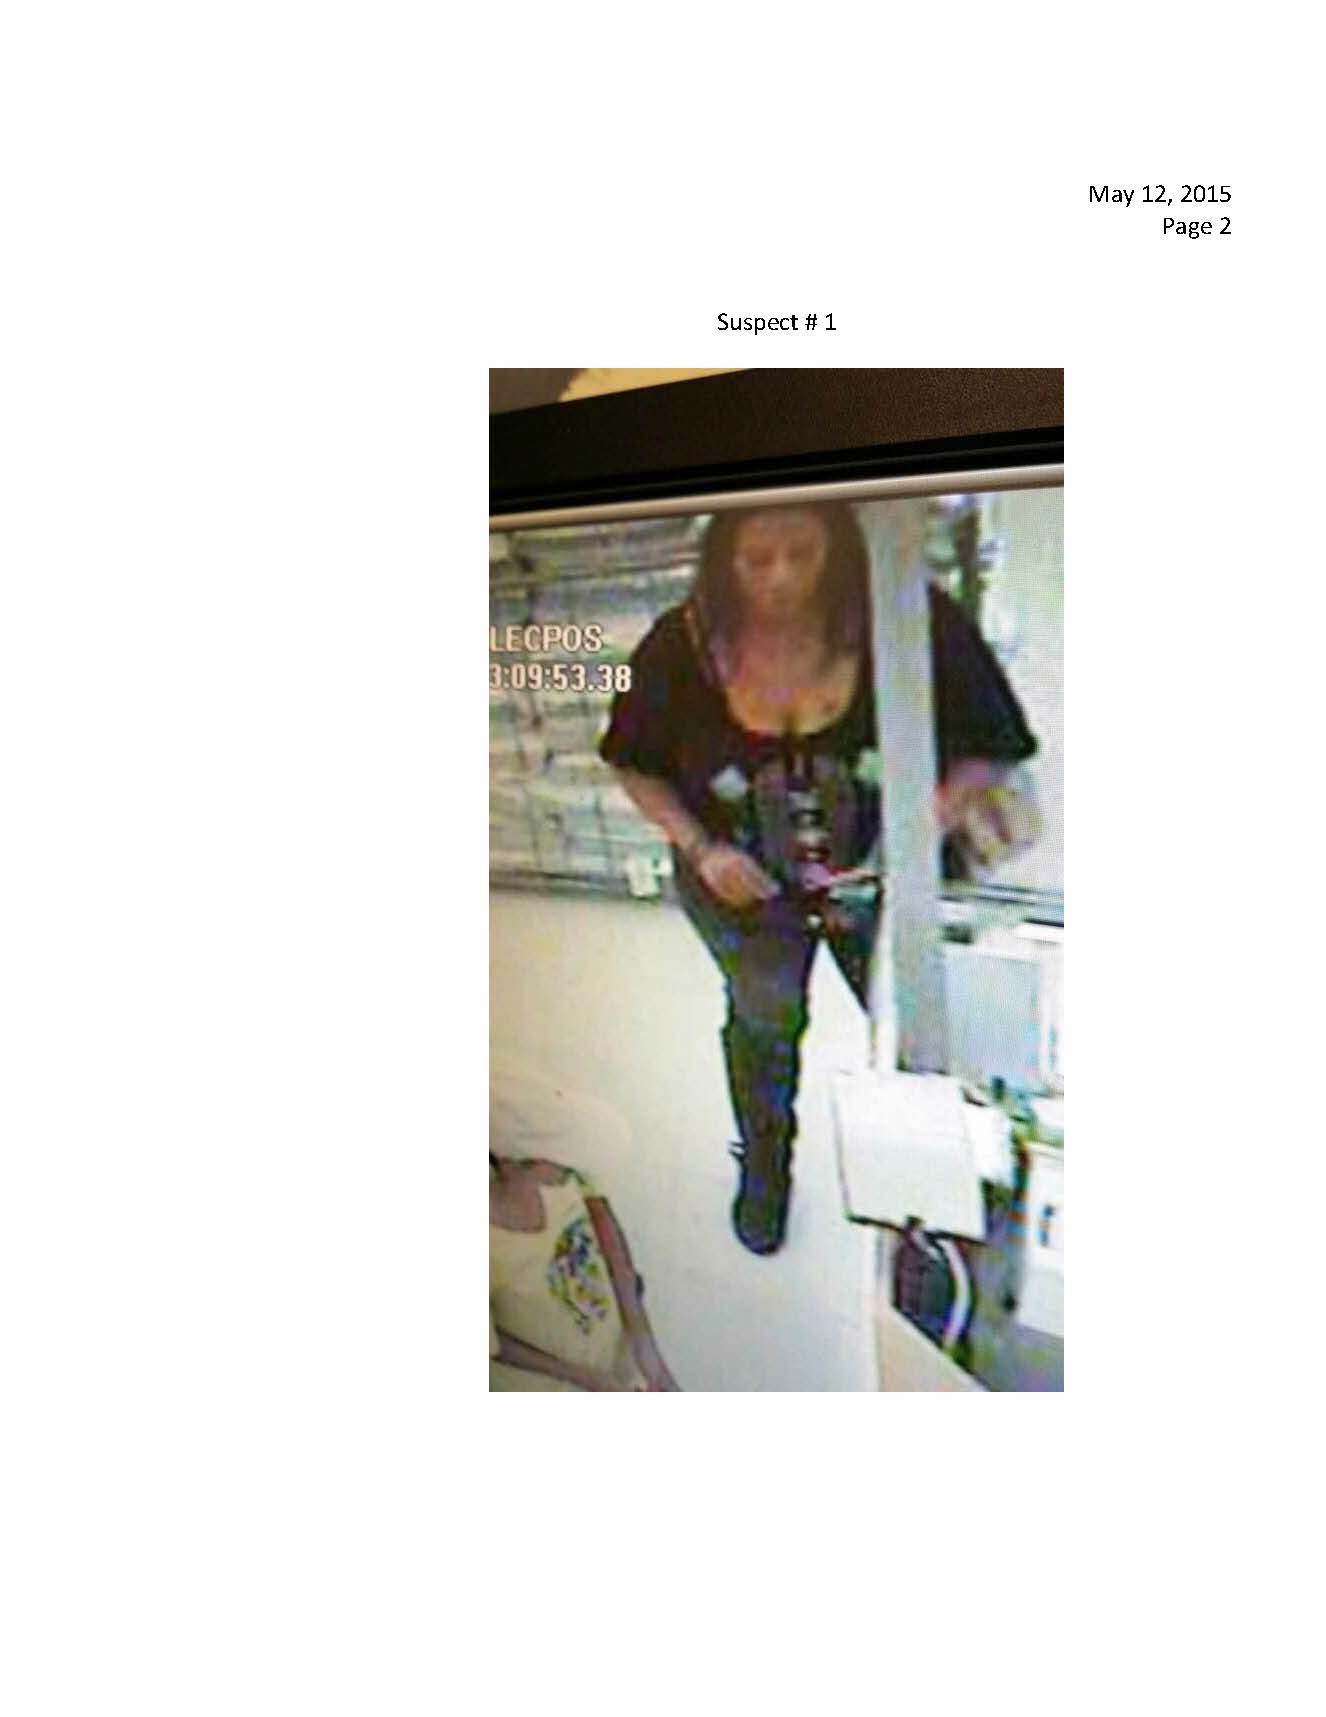 051215 Linda Vista Area Residential Burglary_Page_2